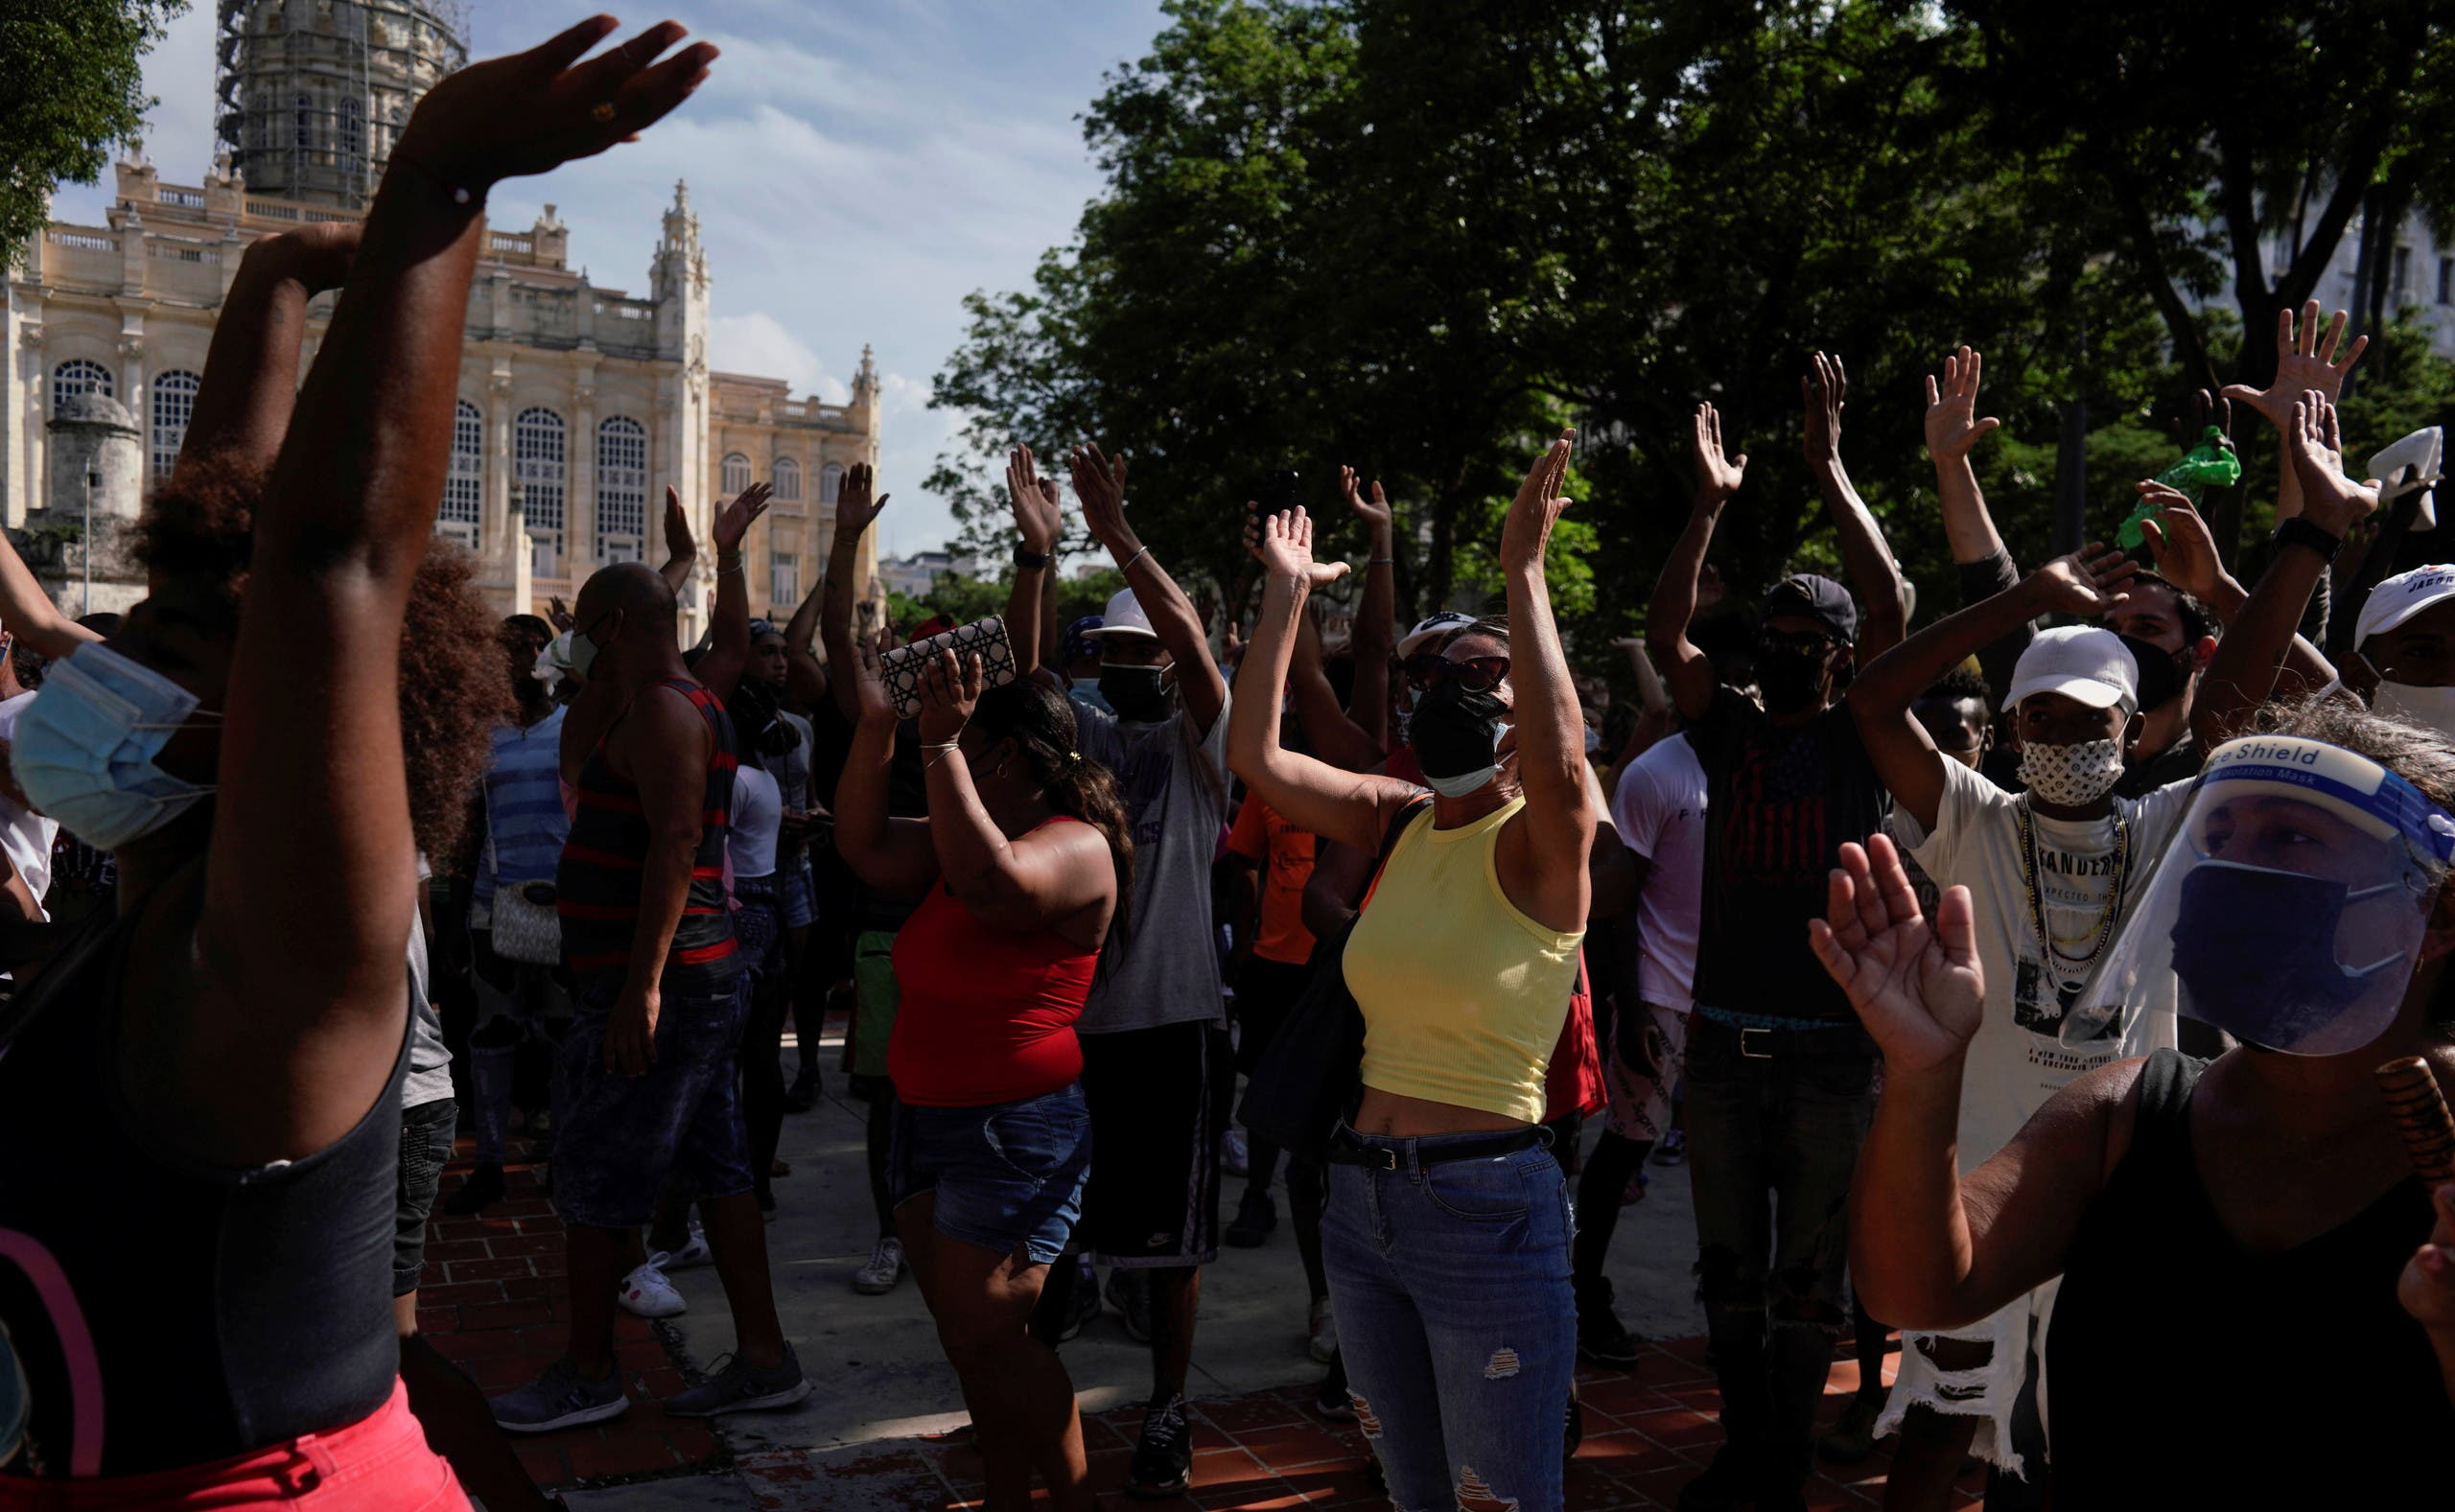 People shout slogans during protests against and in support of the government, amidst the coronavirus disease (COVID-19) outbreak, in Havana, Cuba July 11, 2021. (Reuters)